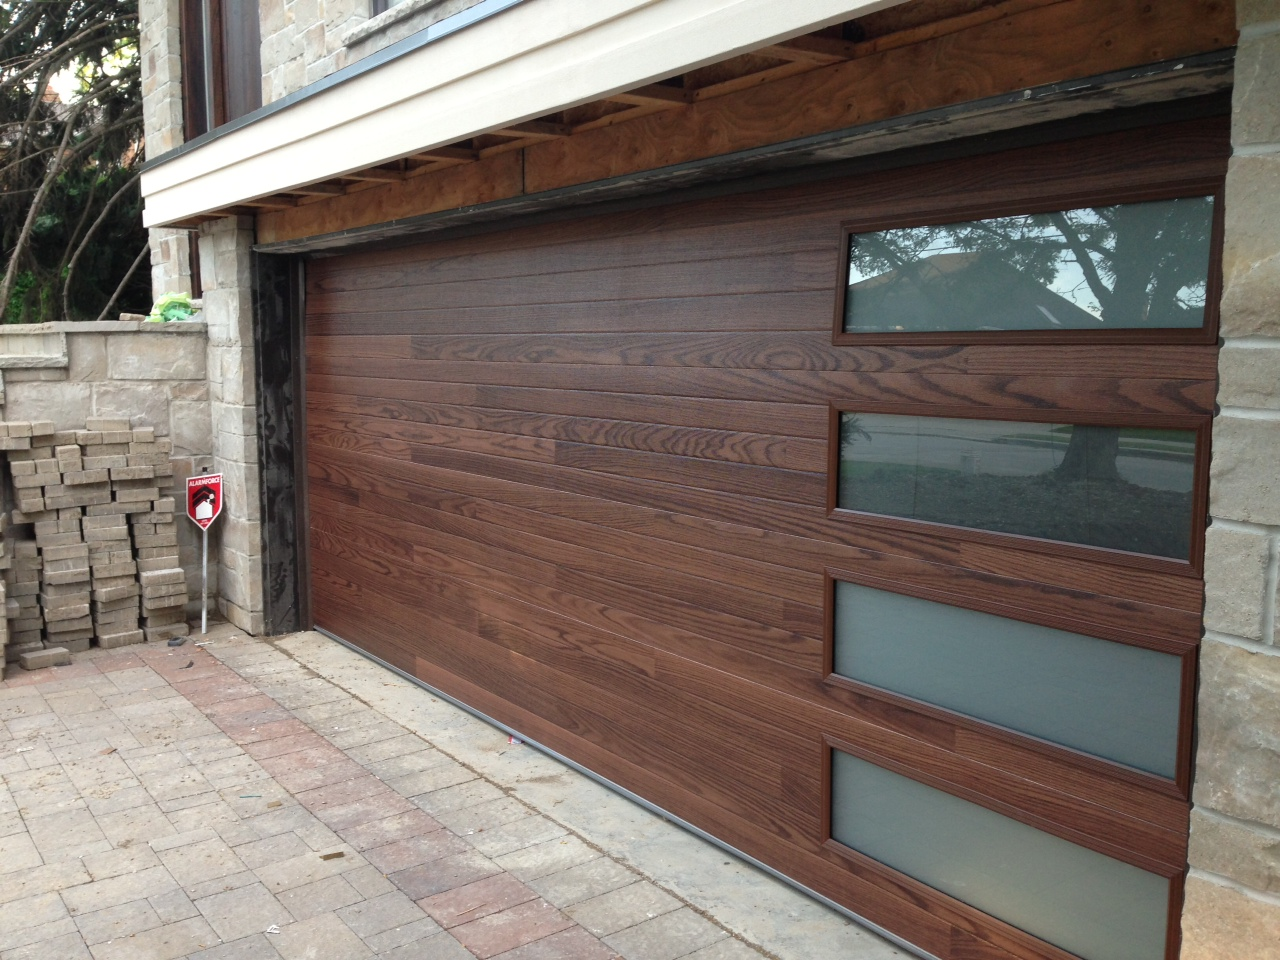 960 #66483E Fiberglass Garage Doors Windows And Doors Toronto pic What Are Garage Doors Made Of 37111280